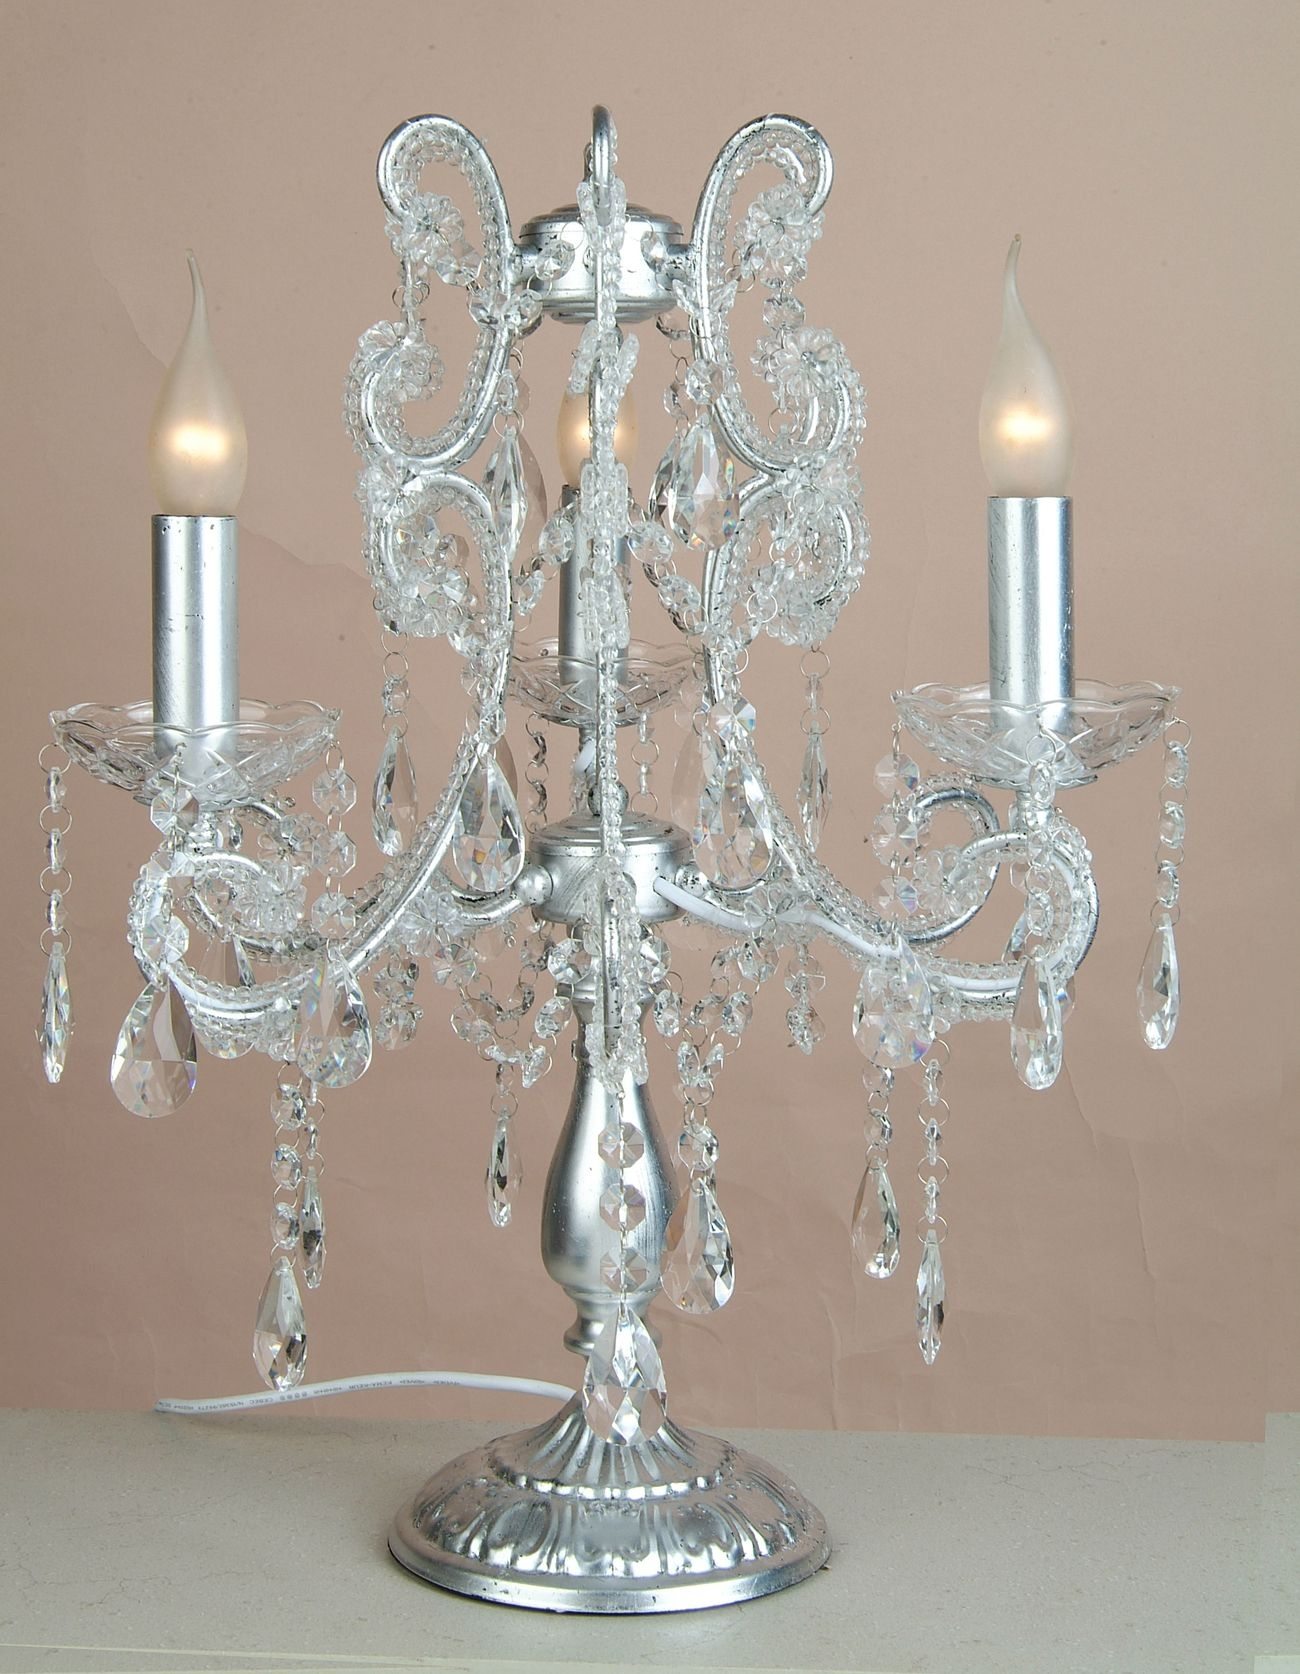 Chandelier Table Lamps All About Kitchen Decor Inspiration For Small Chandelier Table Lamps (View 8 of 25)